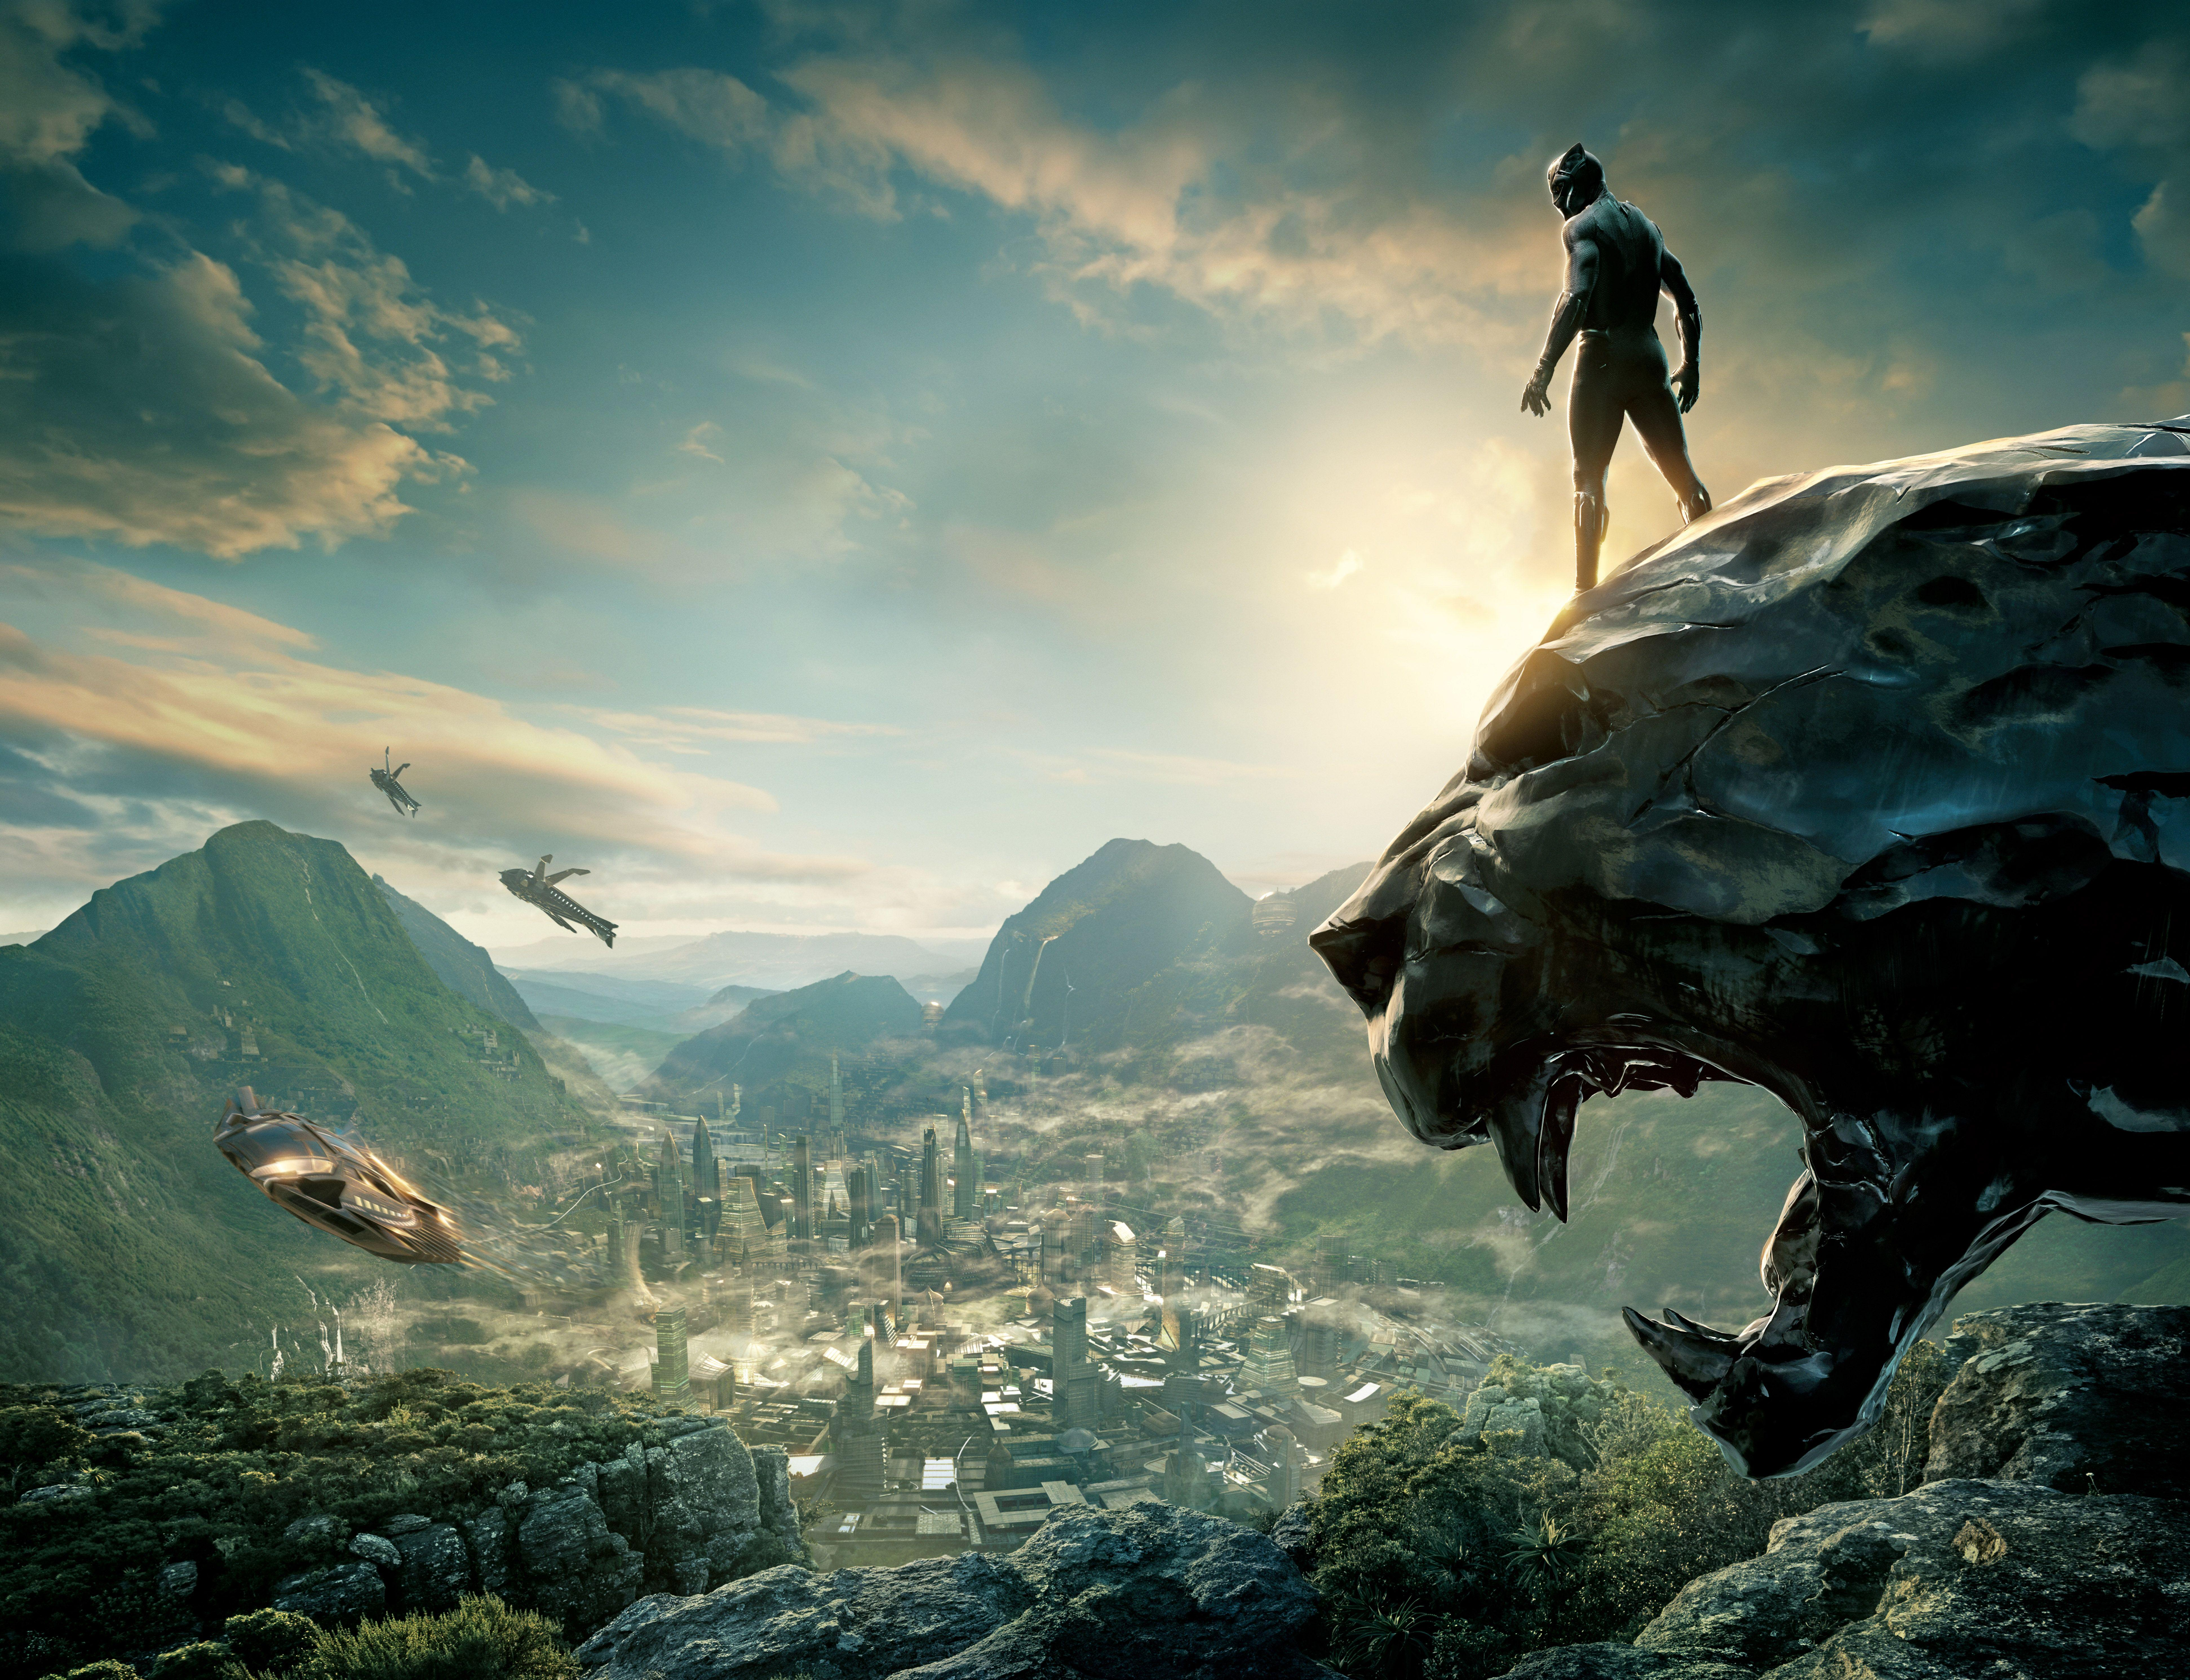 Black Panther Movie Wallpapers Wallpaper Cave